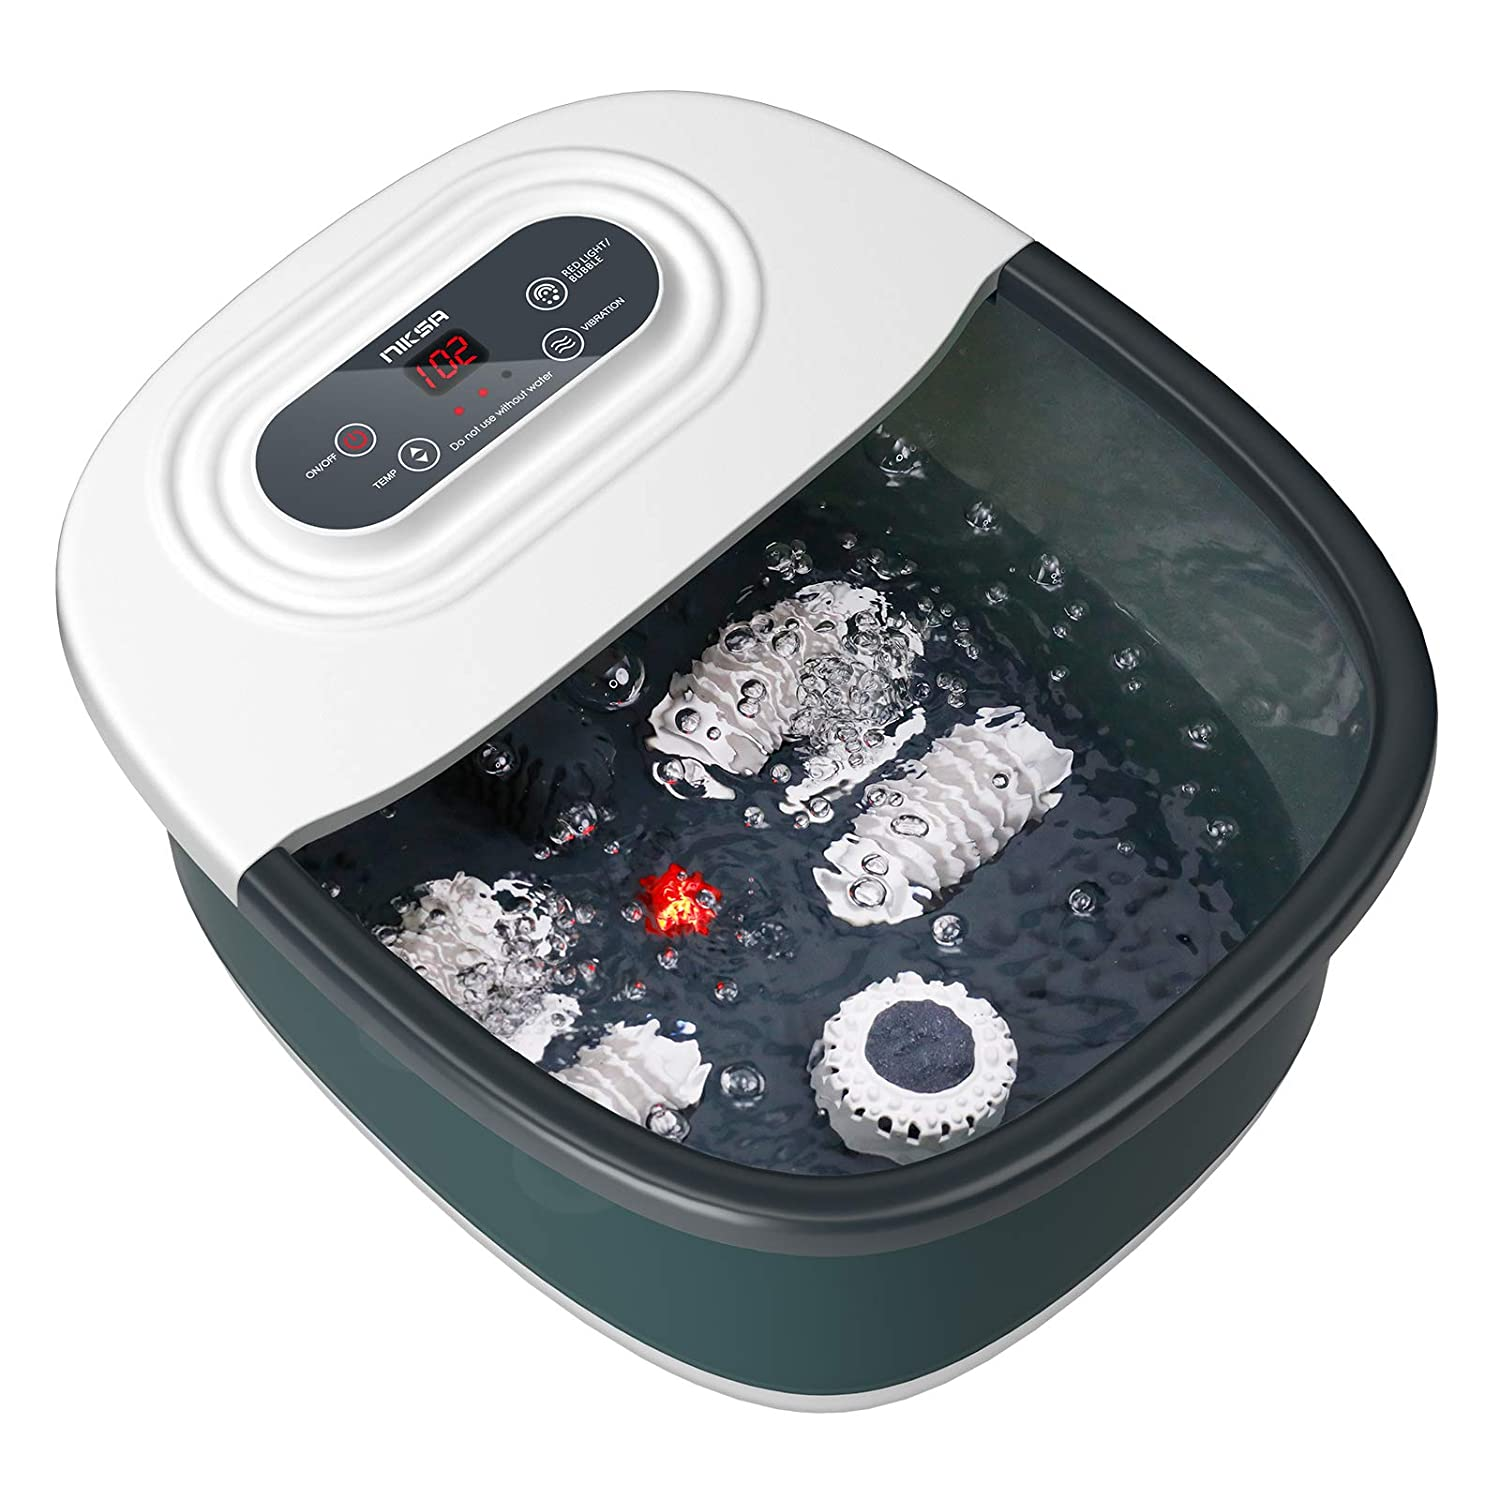 Foot Spa Bath Massager with Heat, Bubbles, Vibration and Red Lig